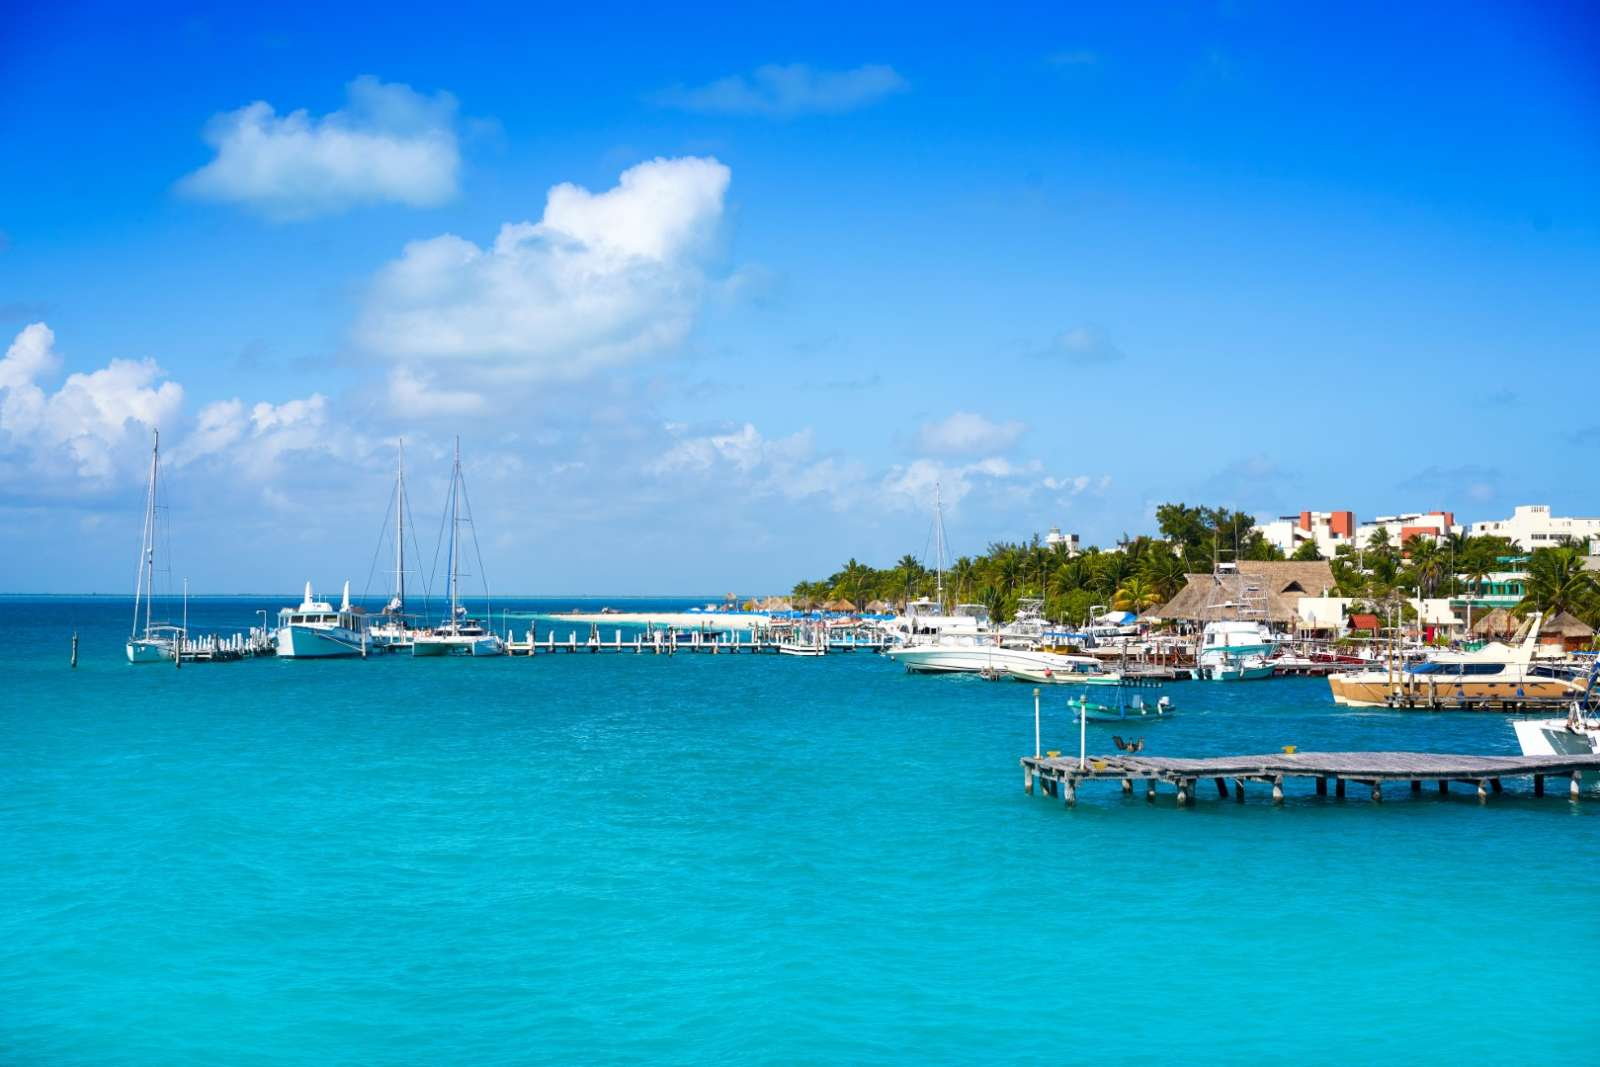 Harbour entrance at Isla Mujeres Mexico